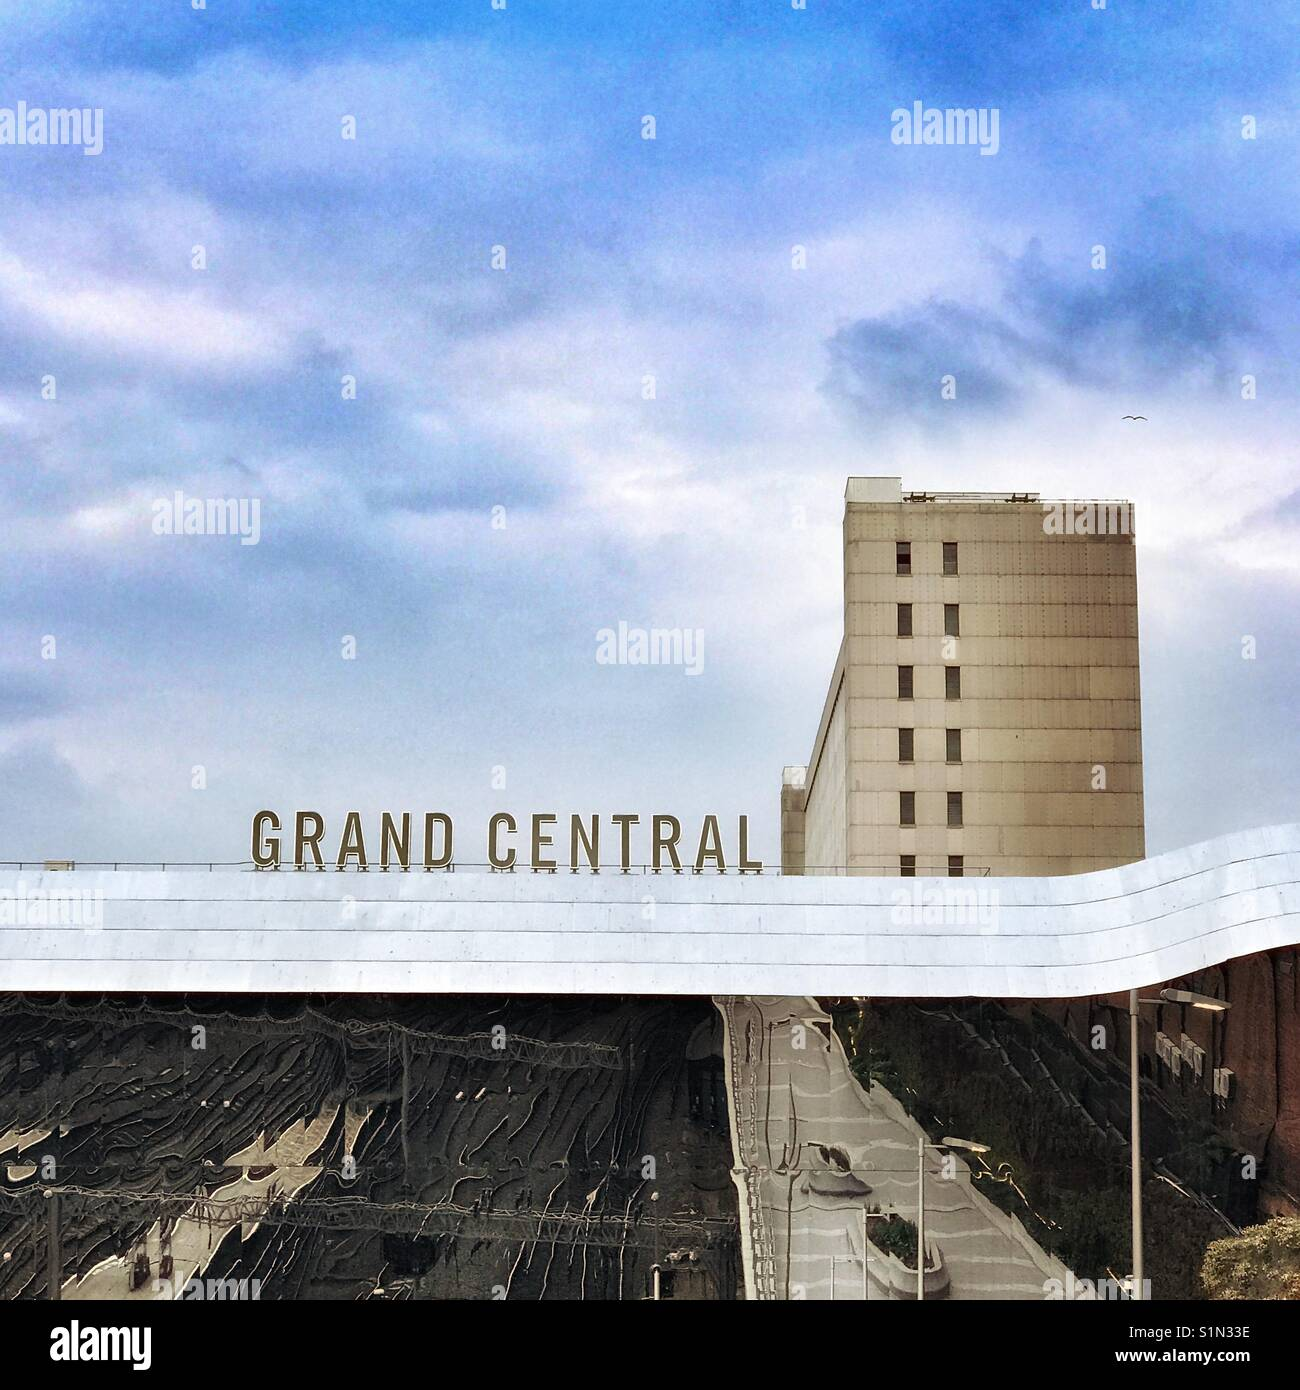 Gare de Grand Central autrefois connu sous le nom de la gare de New Street, Birmingham, UK Photo Stock